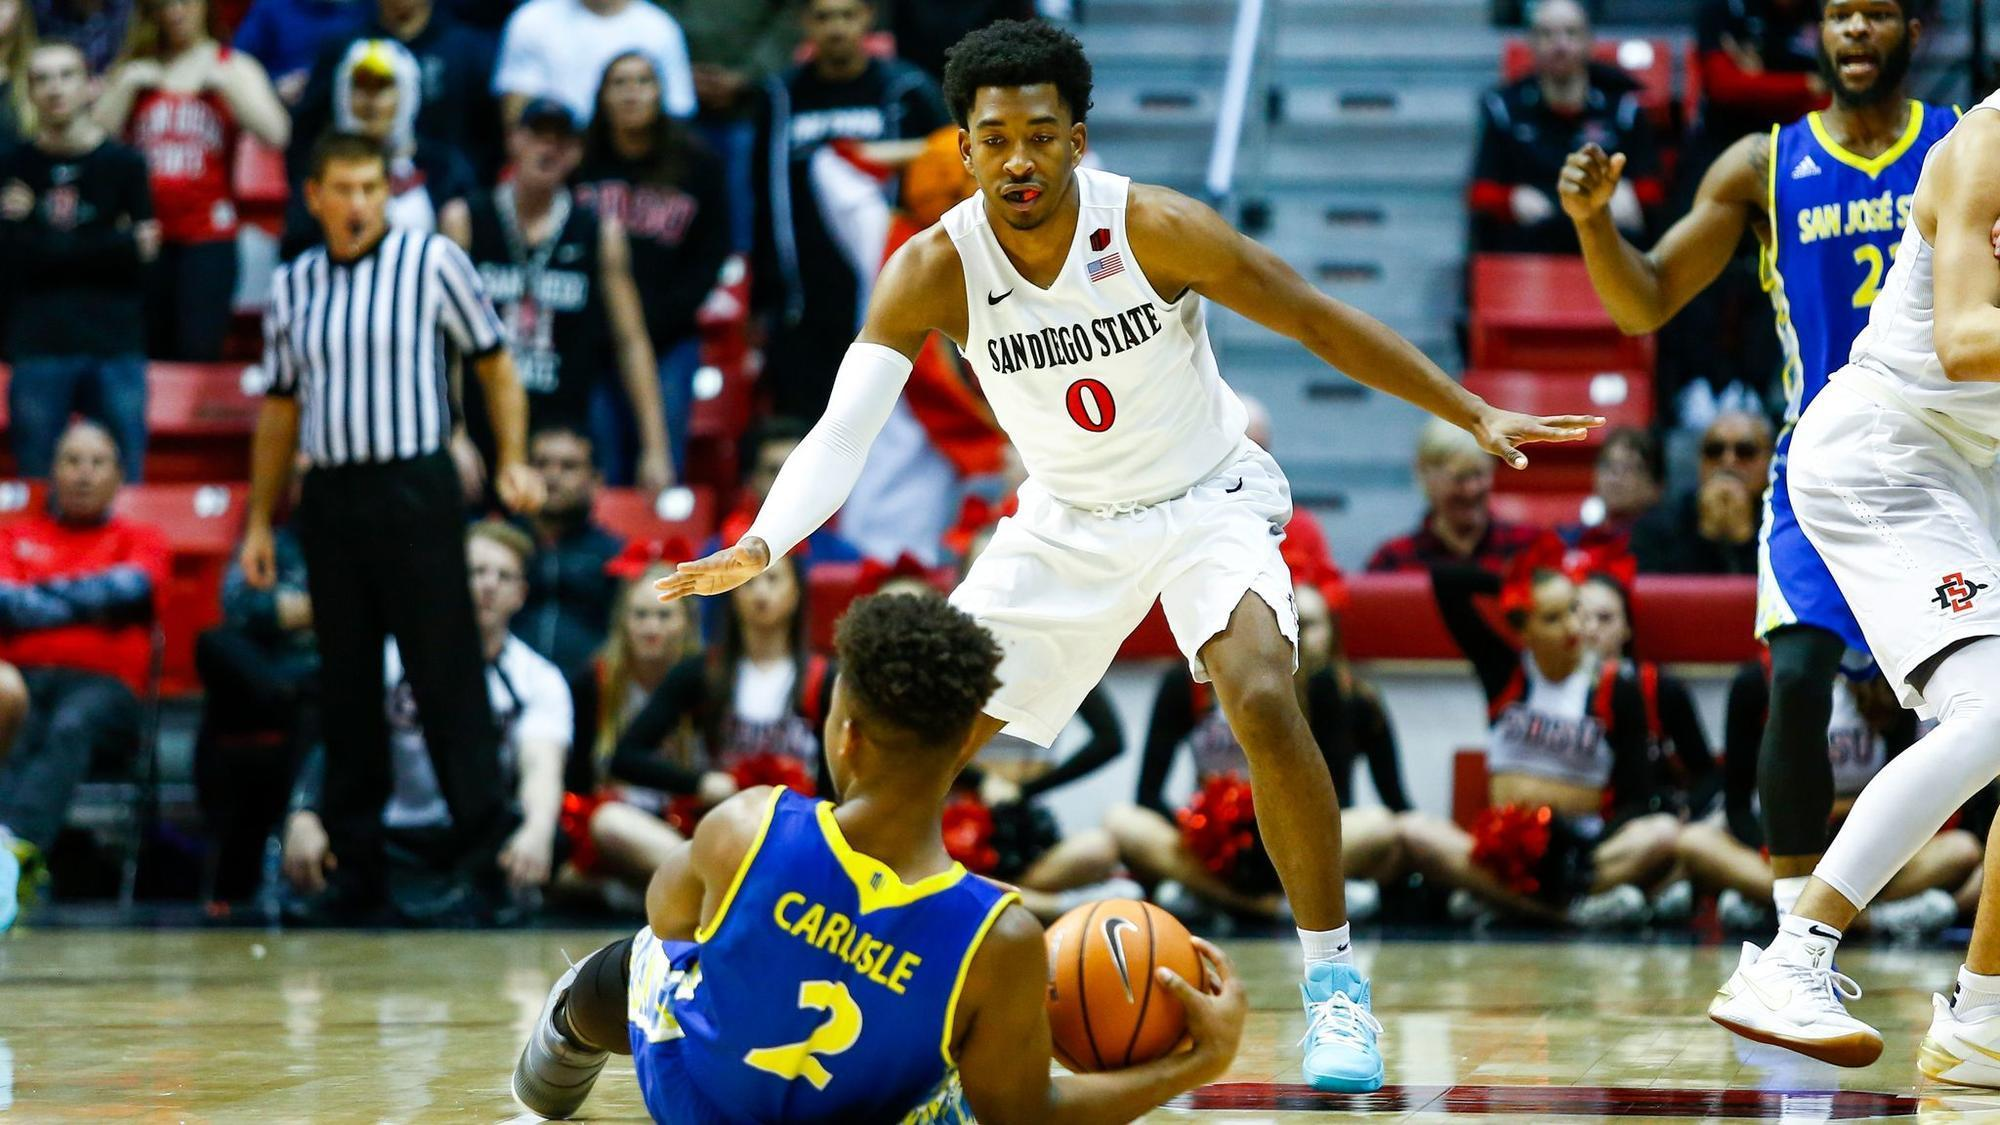 SDSU's Montana is back up in an up-and-down season - The ...